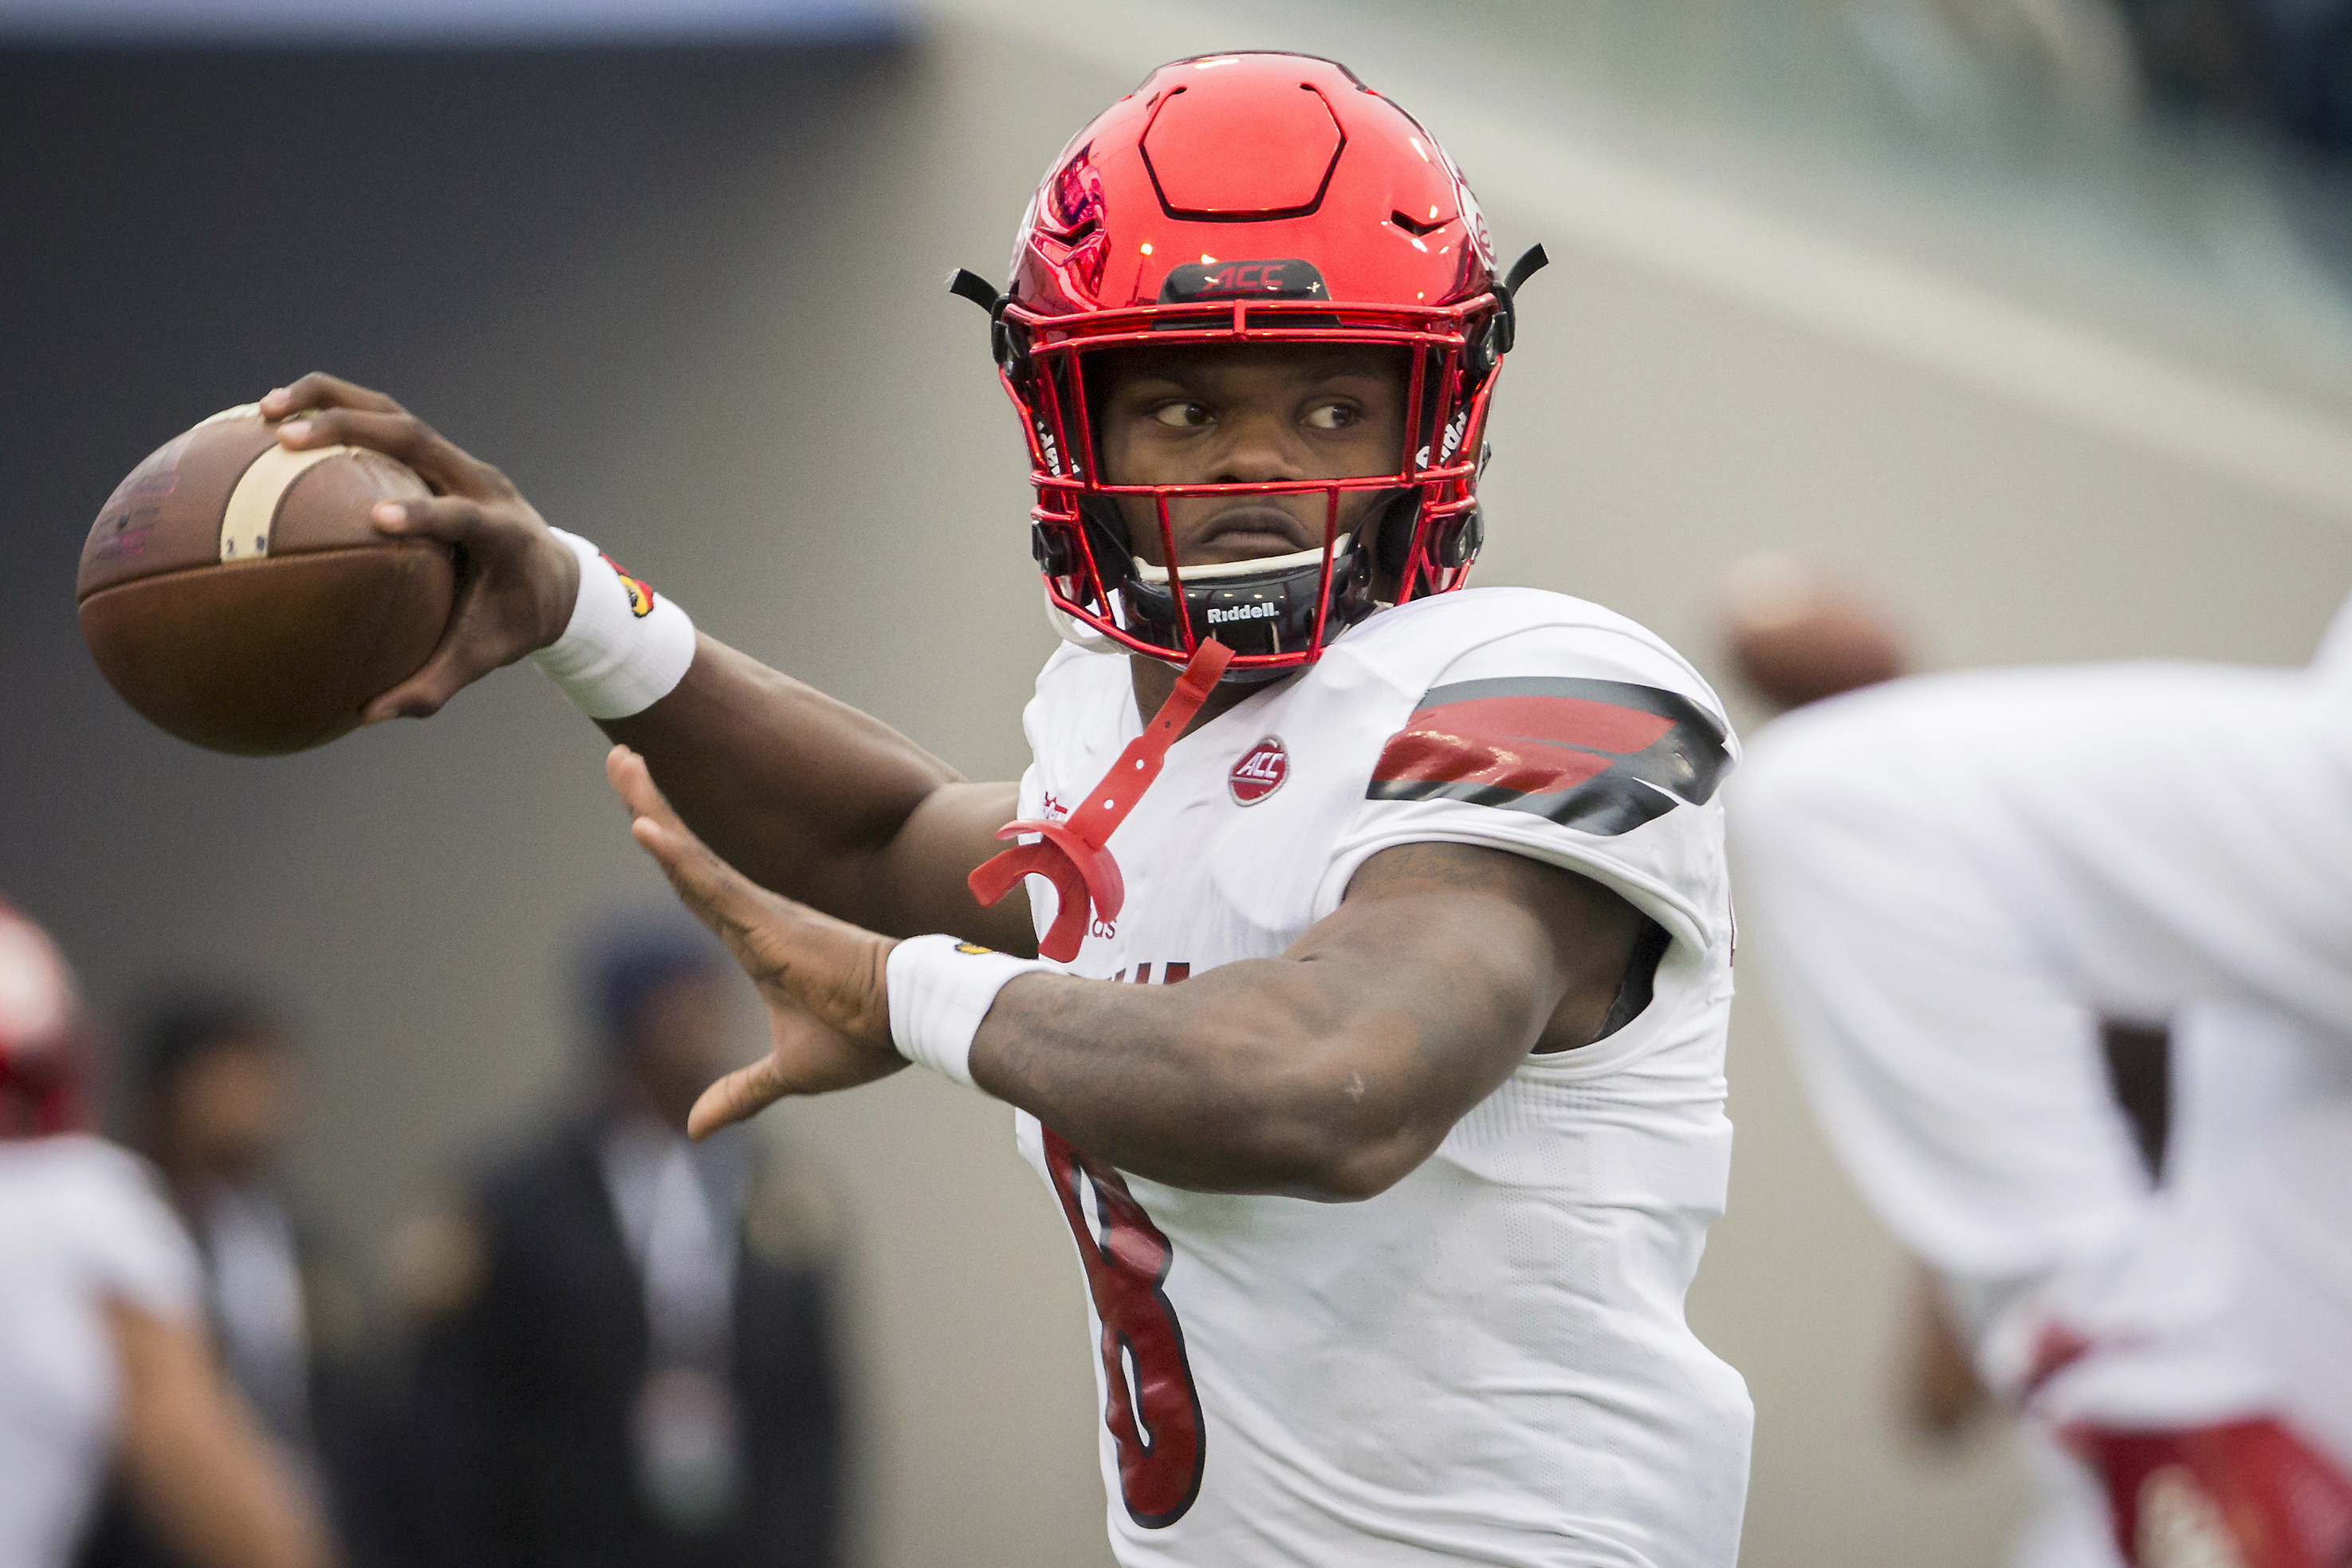 REPORT: Several Teams Have Asked Lamar Jackson to Work Out